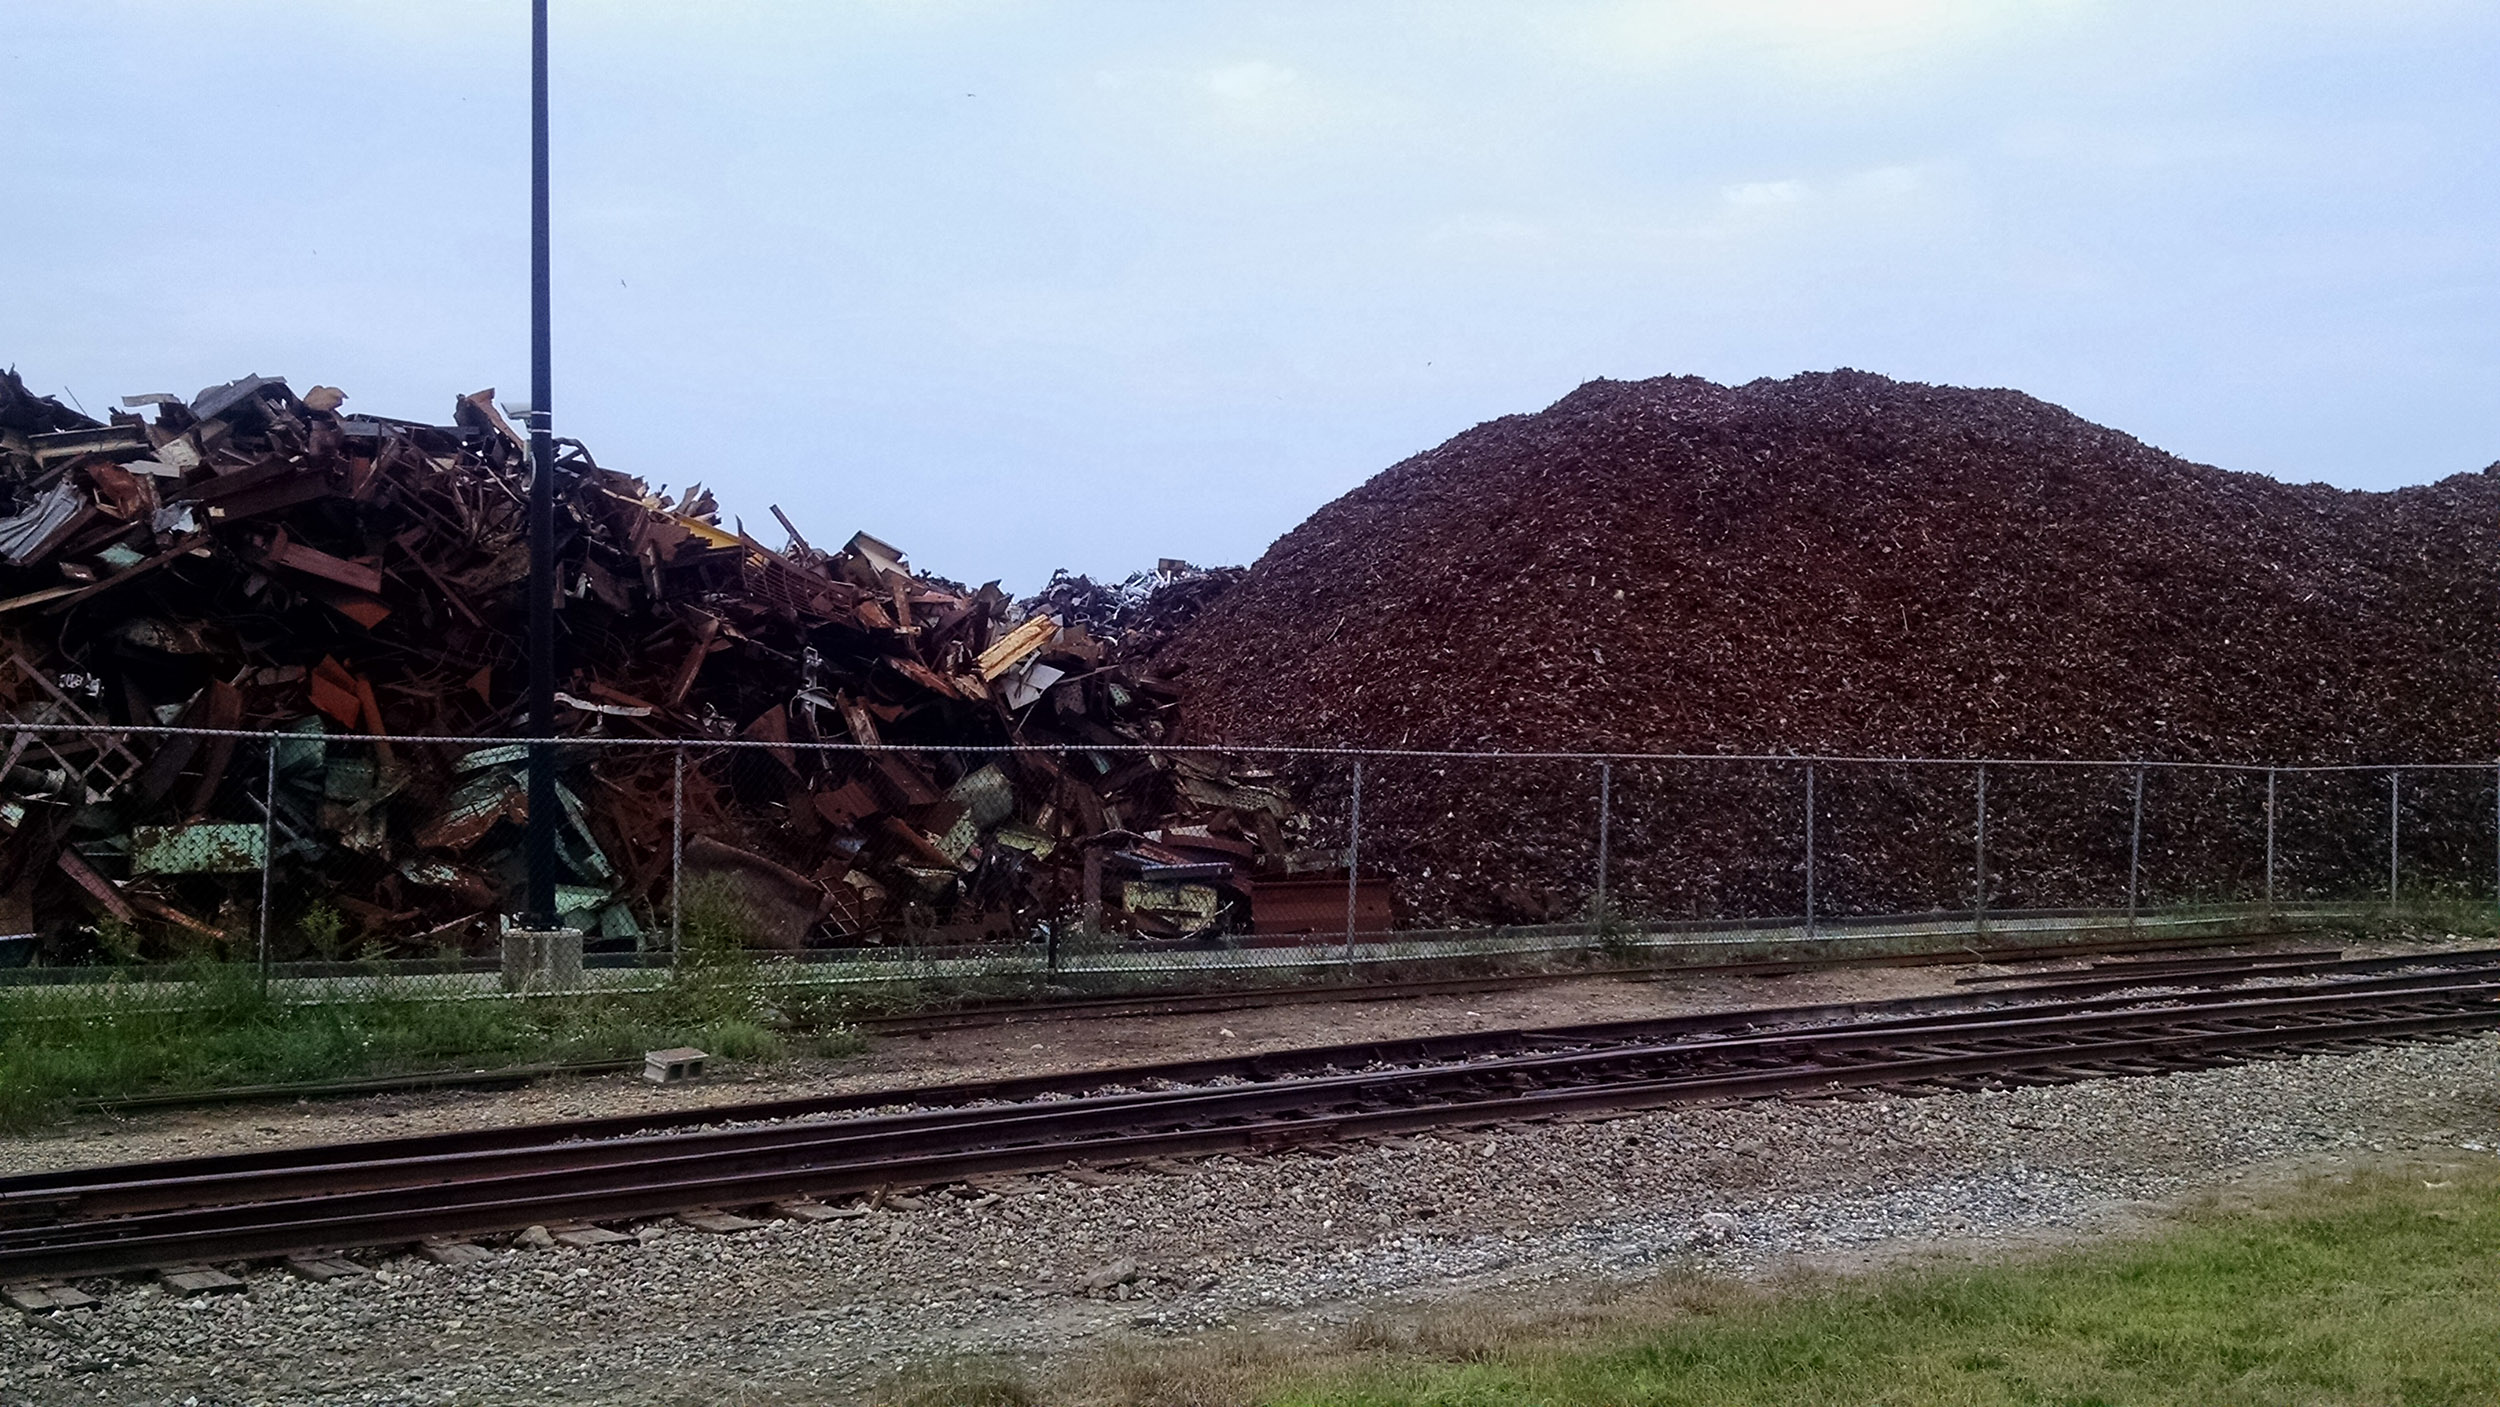 Piles of scrap metal line a railroad transfer station in southwest Detroit. Image credit: Nick Caverly